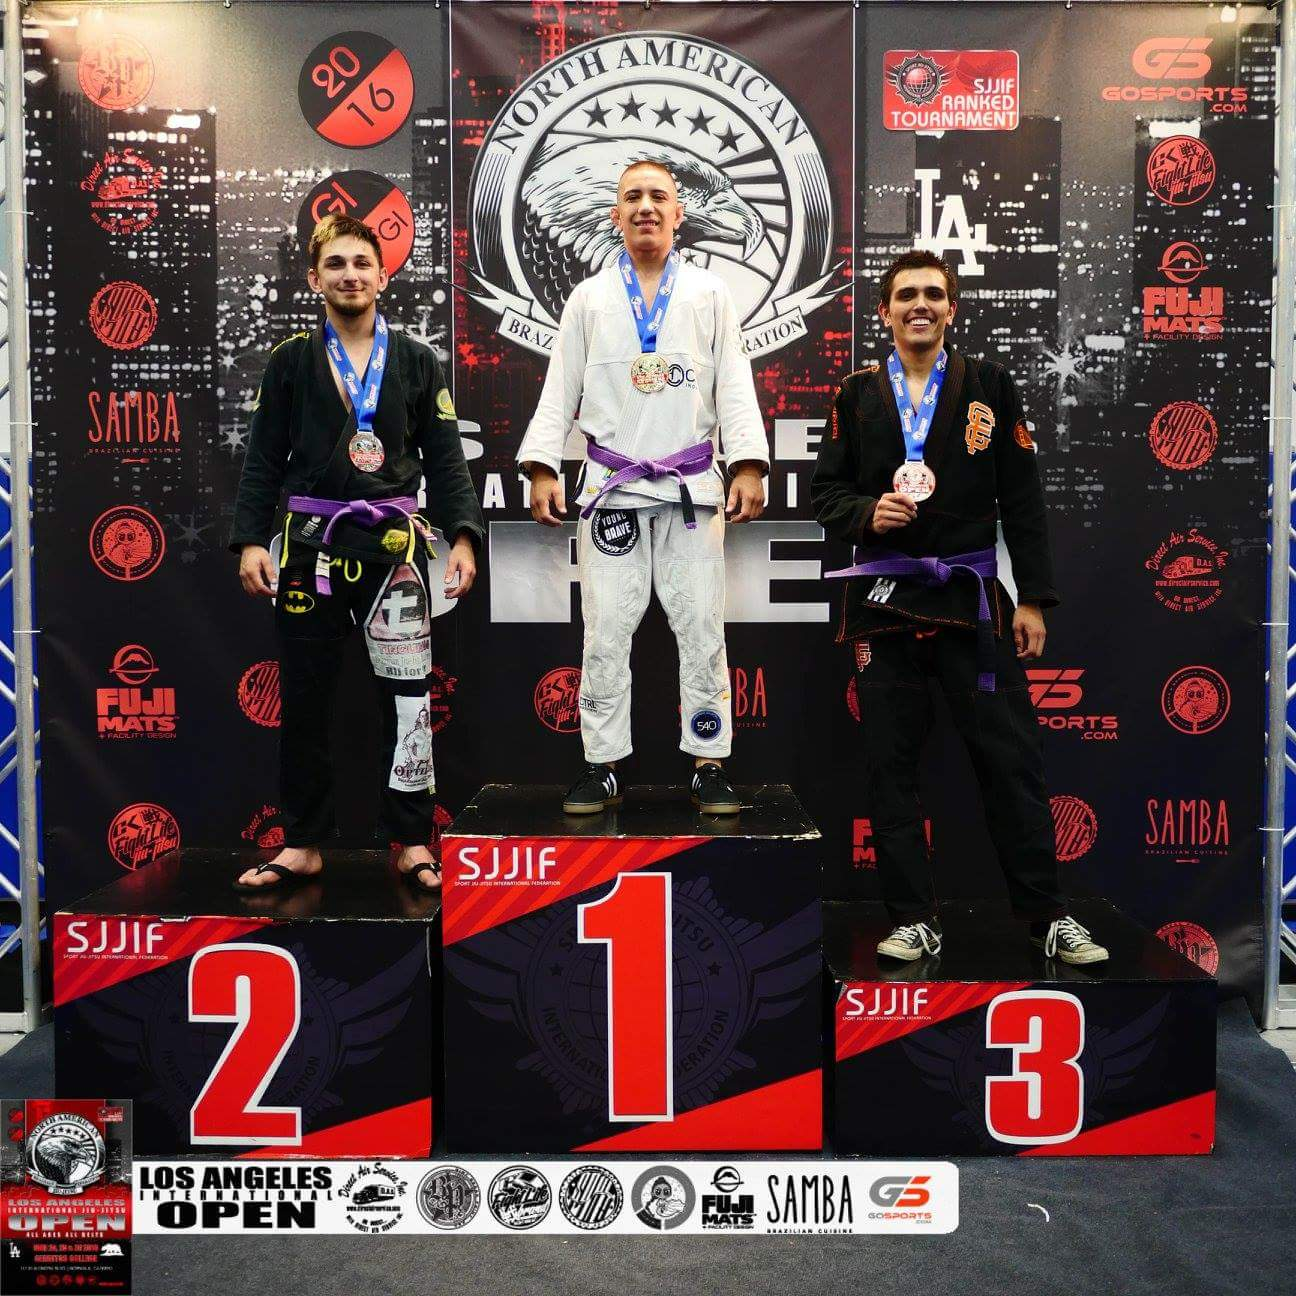 Jiu-jitsu-tournament-silver